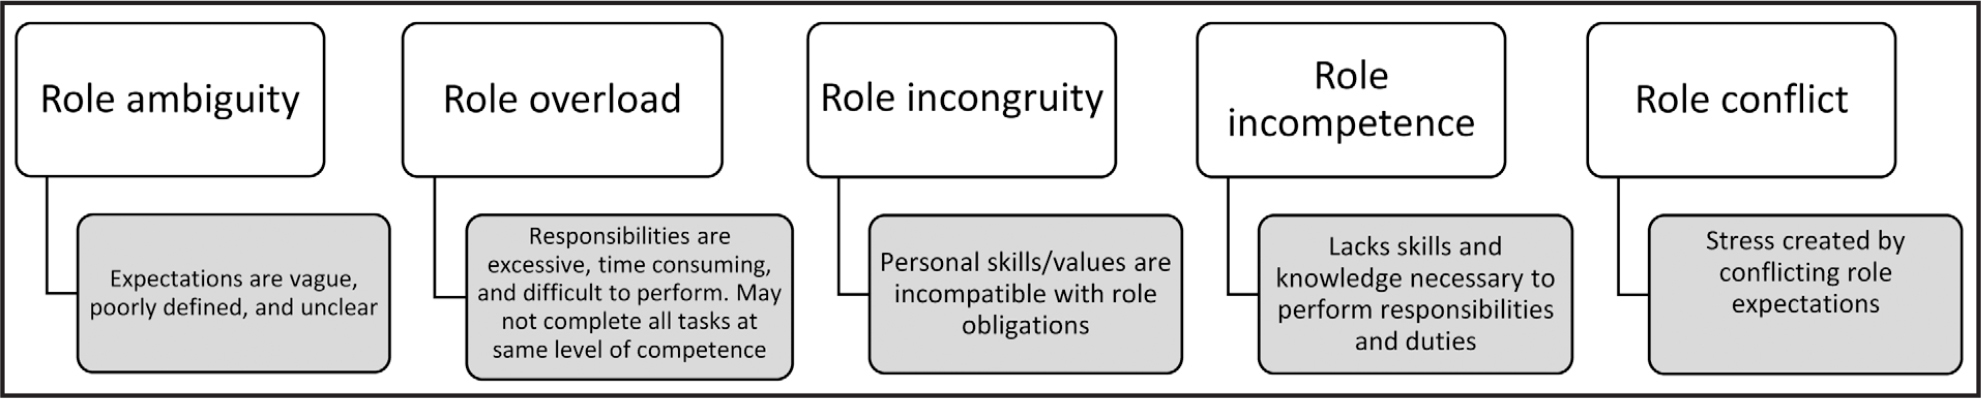 Definitions of role complexities.